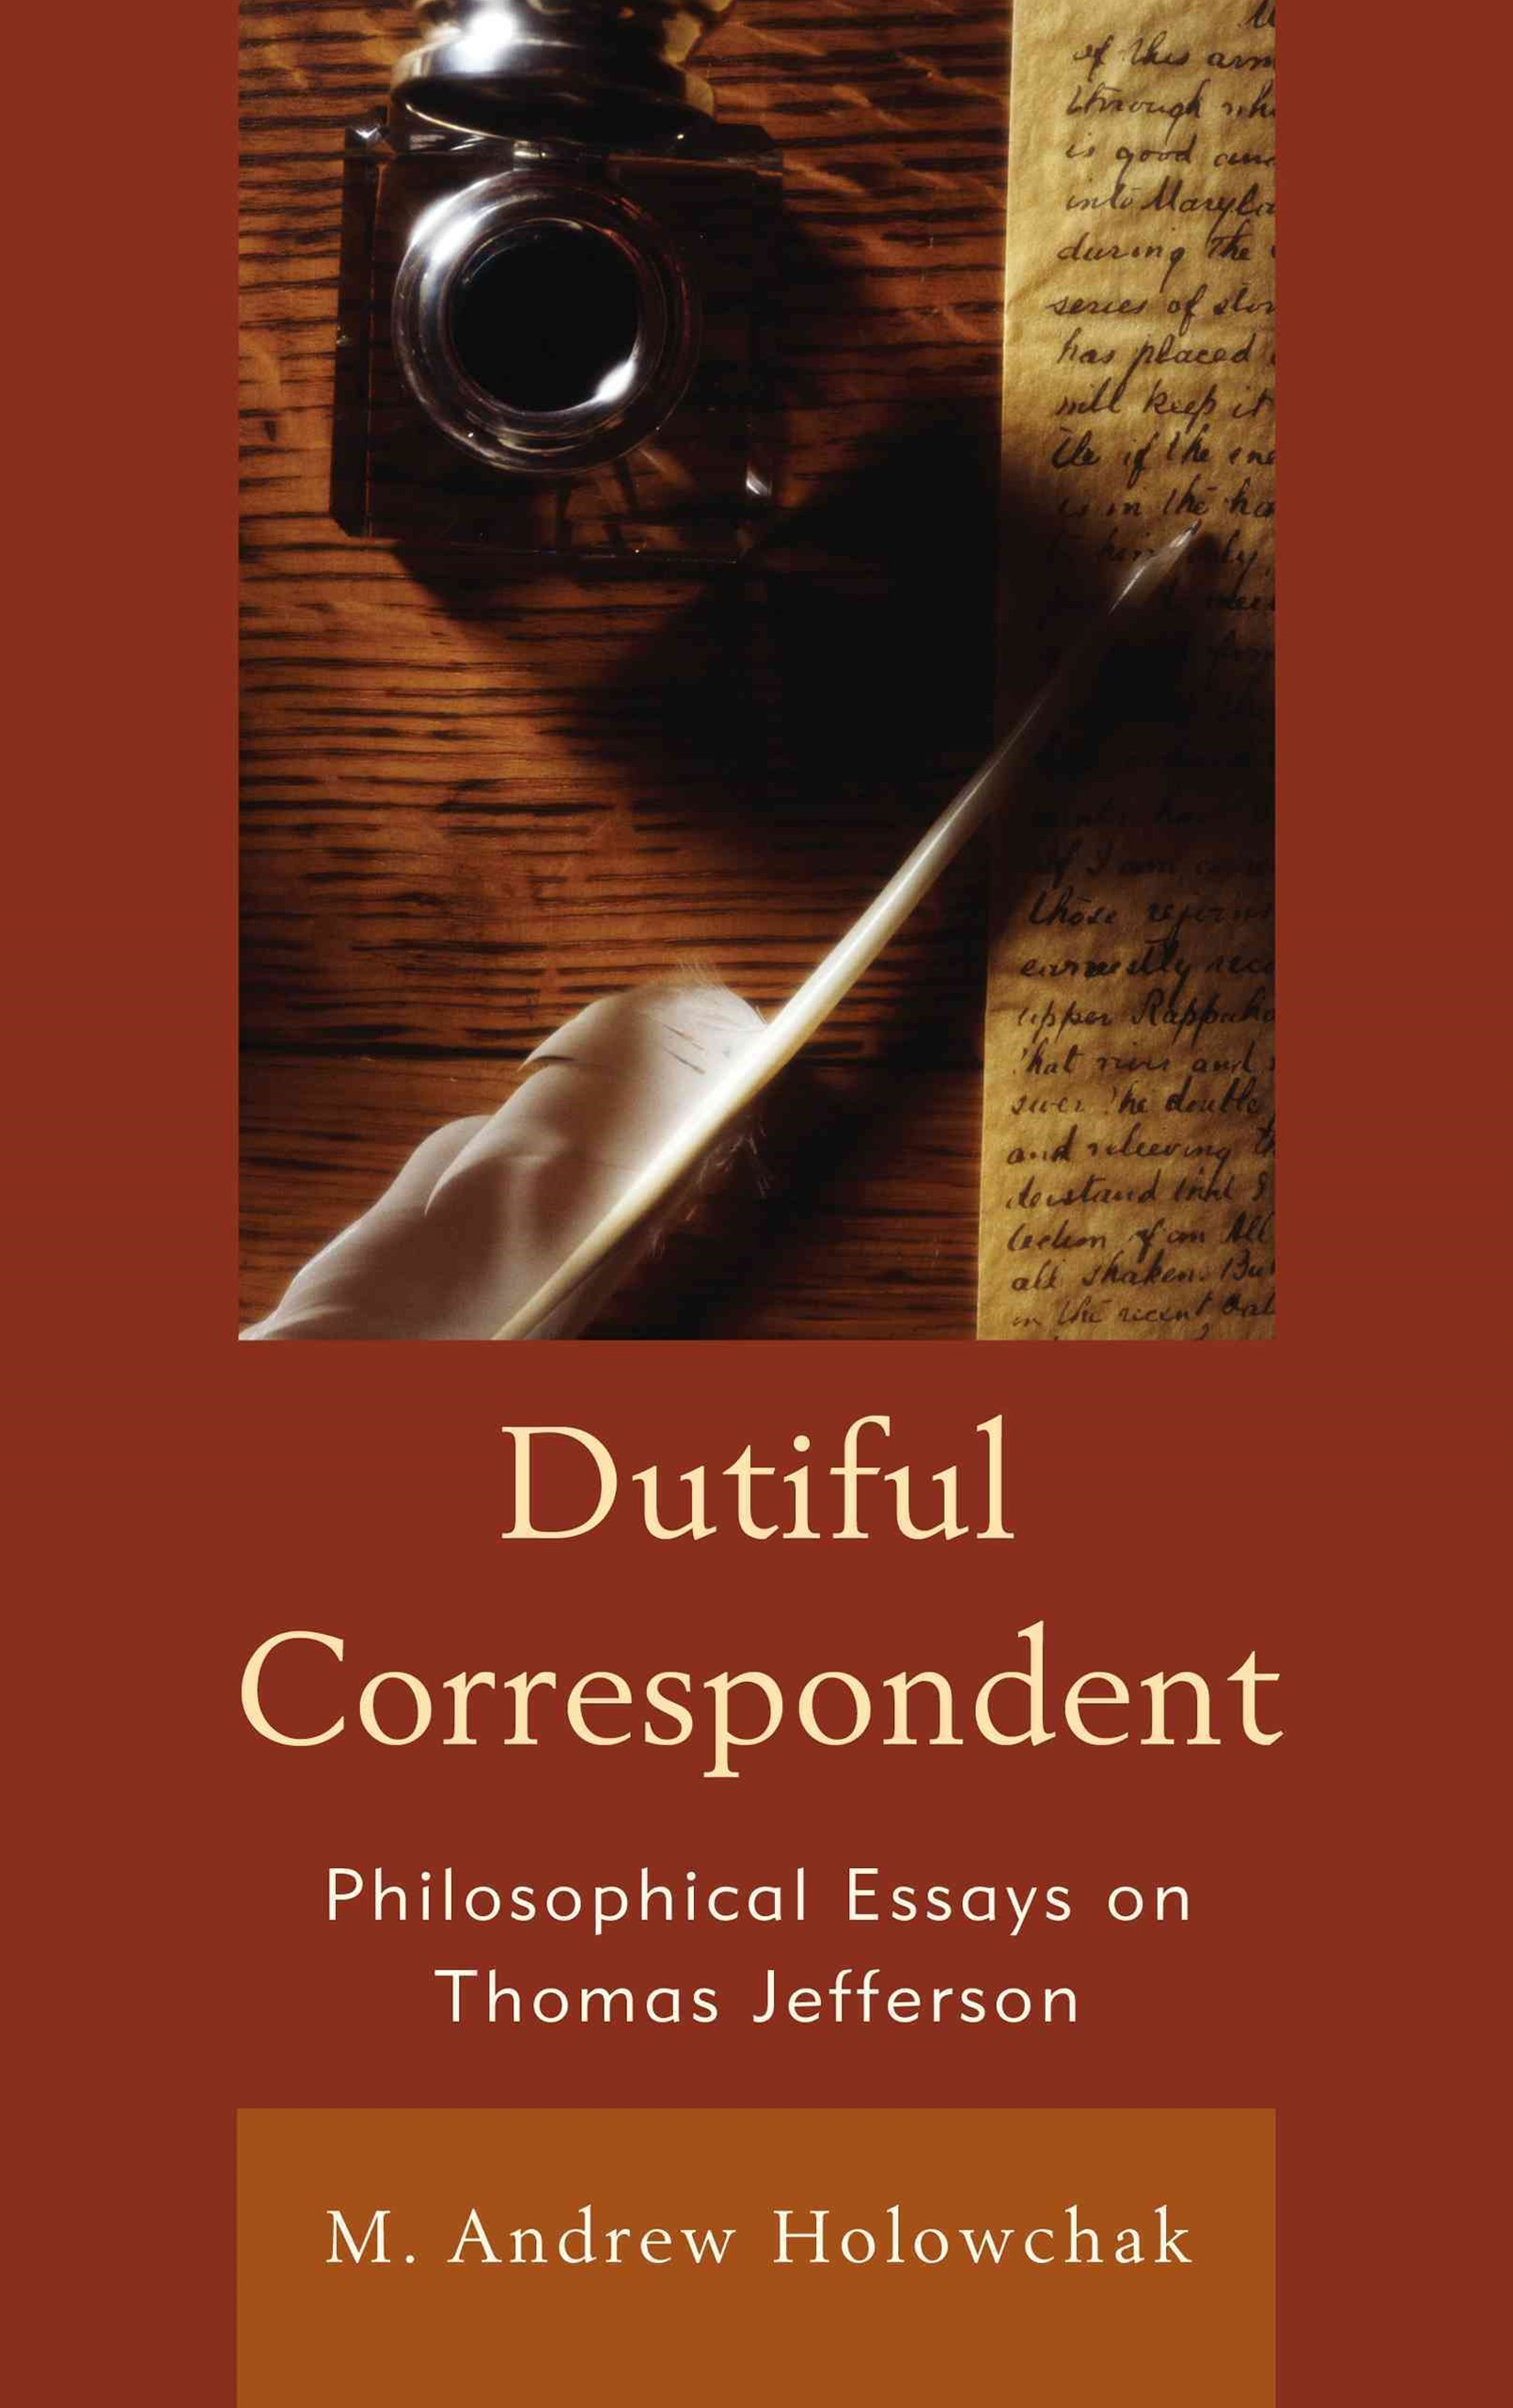 Dutiful Correspondent